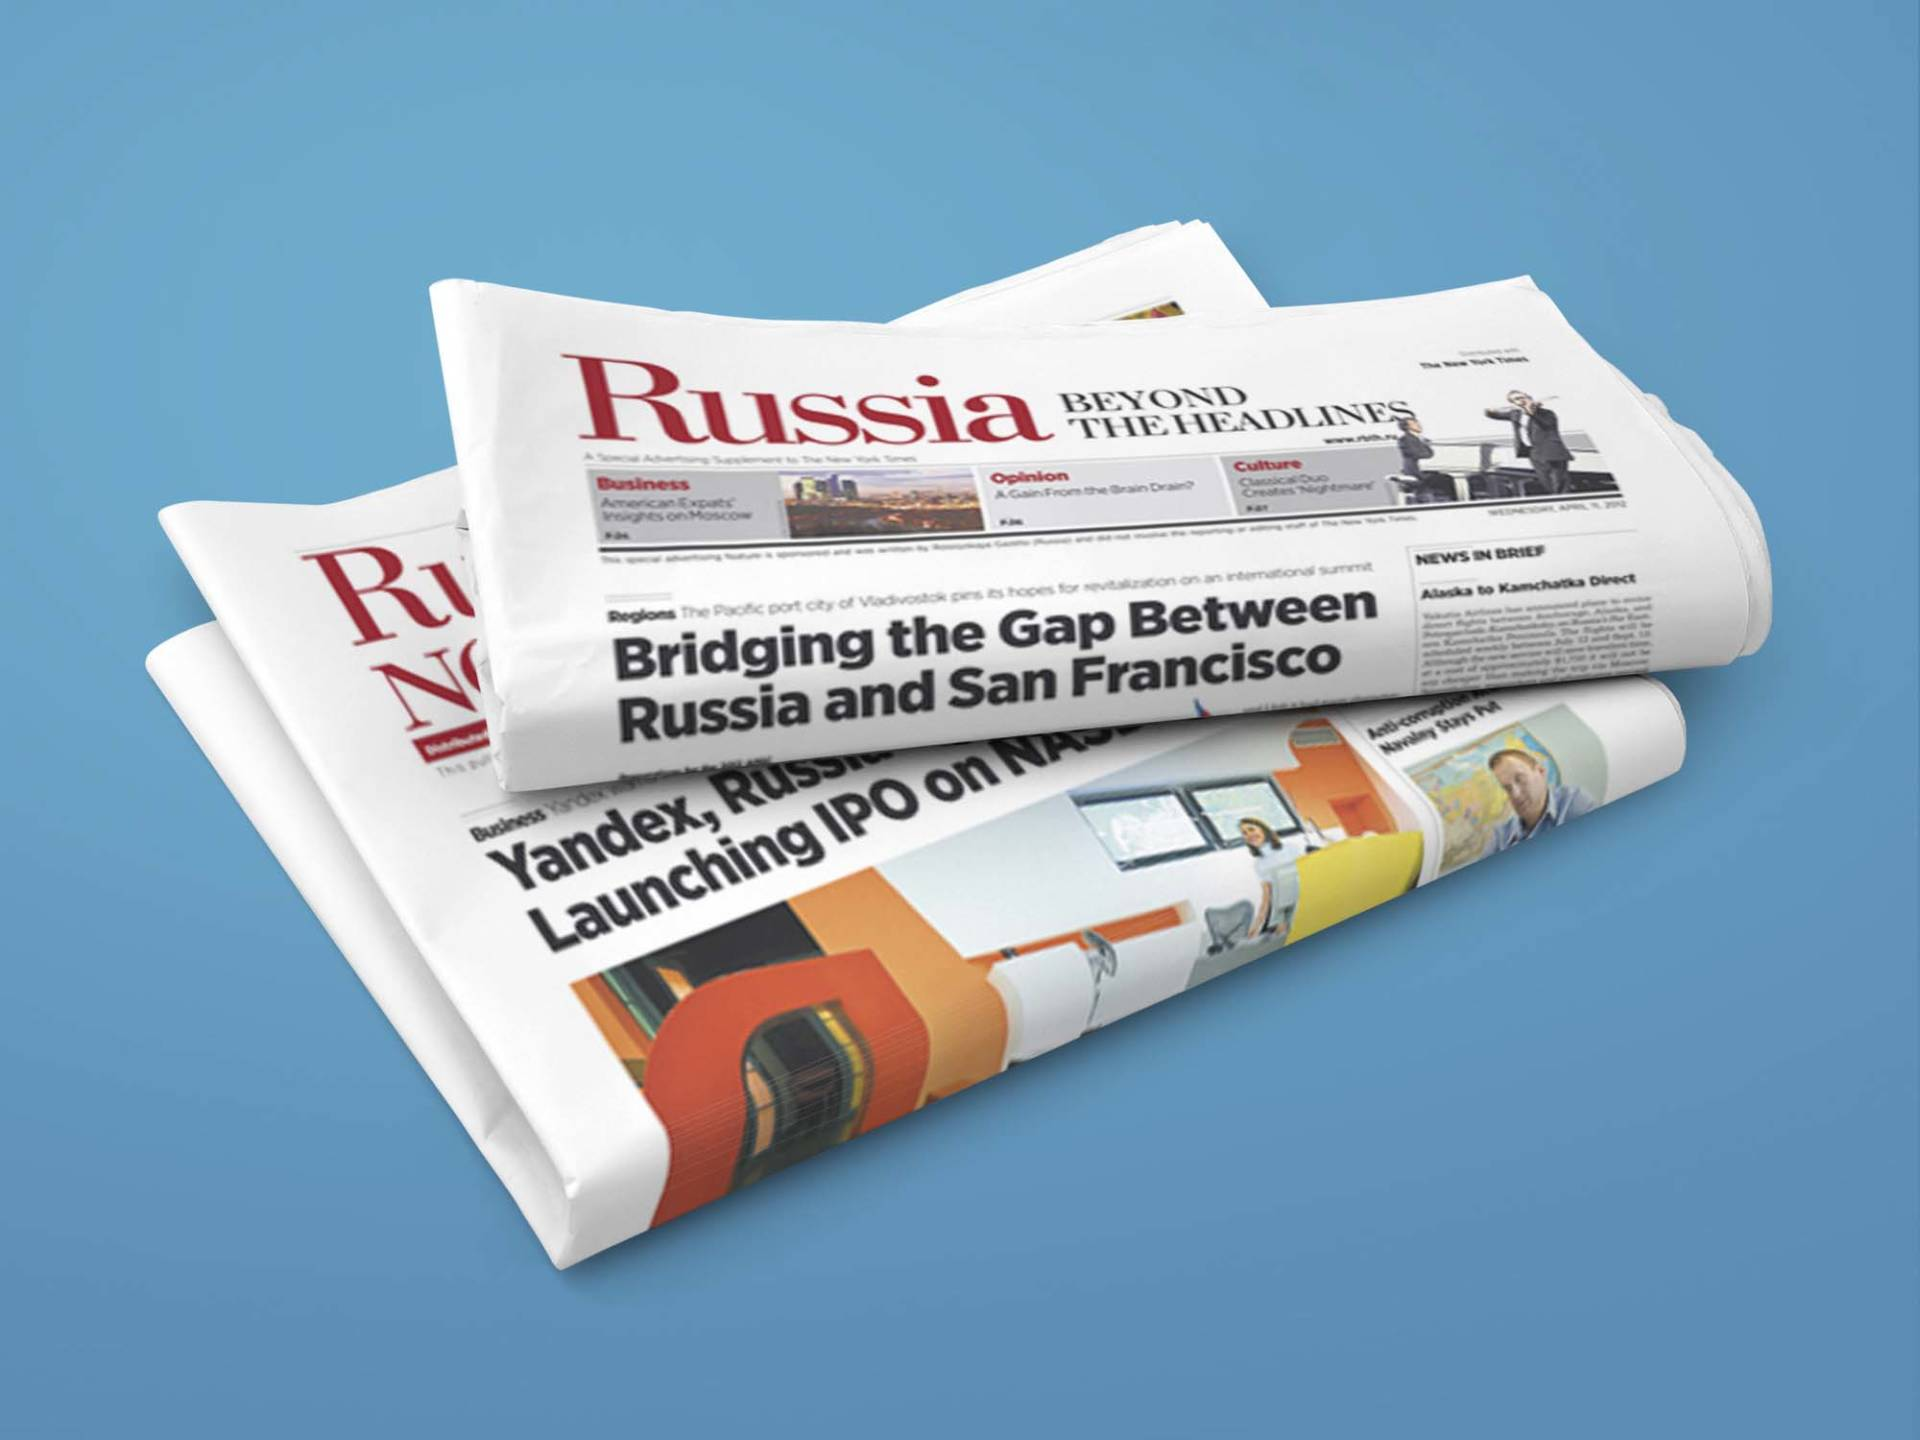 Russia_Beyond_The_Headline_01_Wenceslau_News_Design